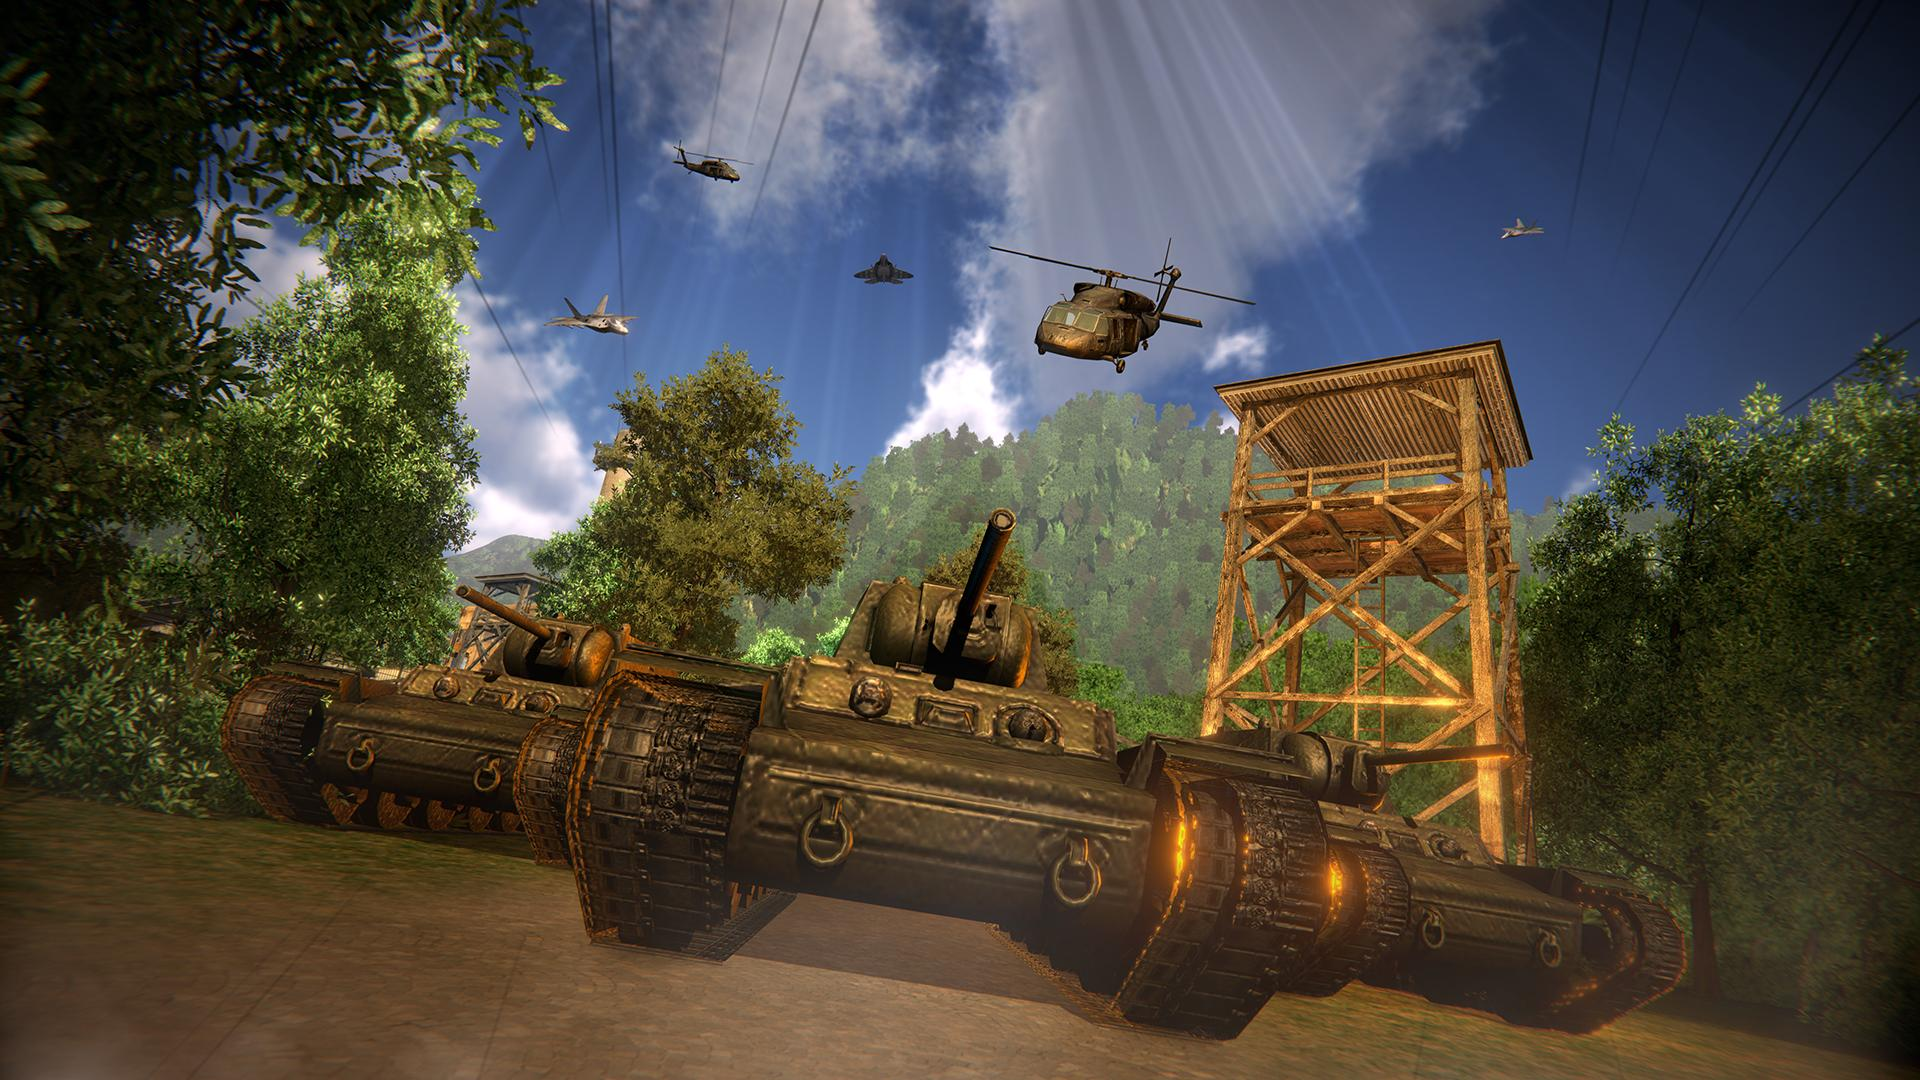 Tank Games 2020 Free Tank Battle Army Combat Games 1.3 Screenshot 10